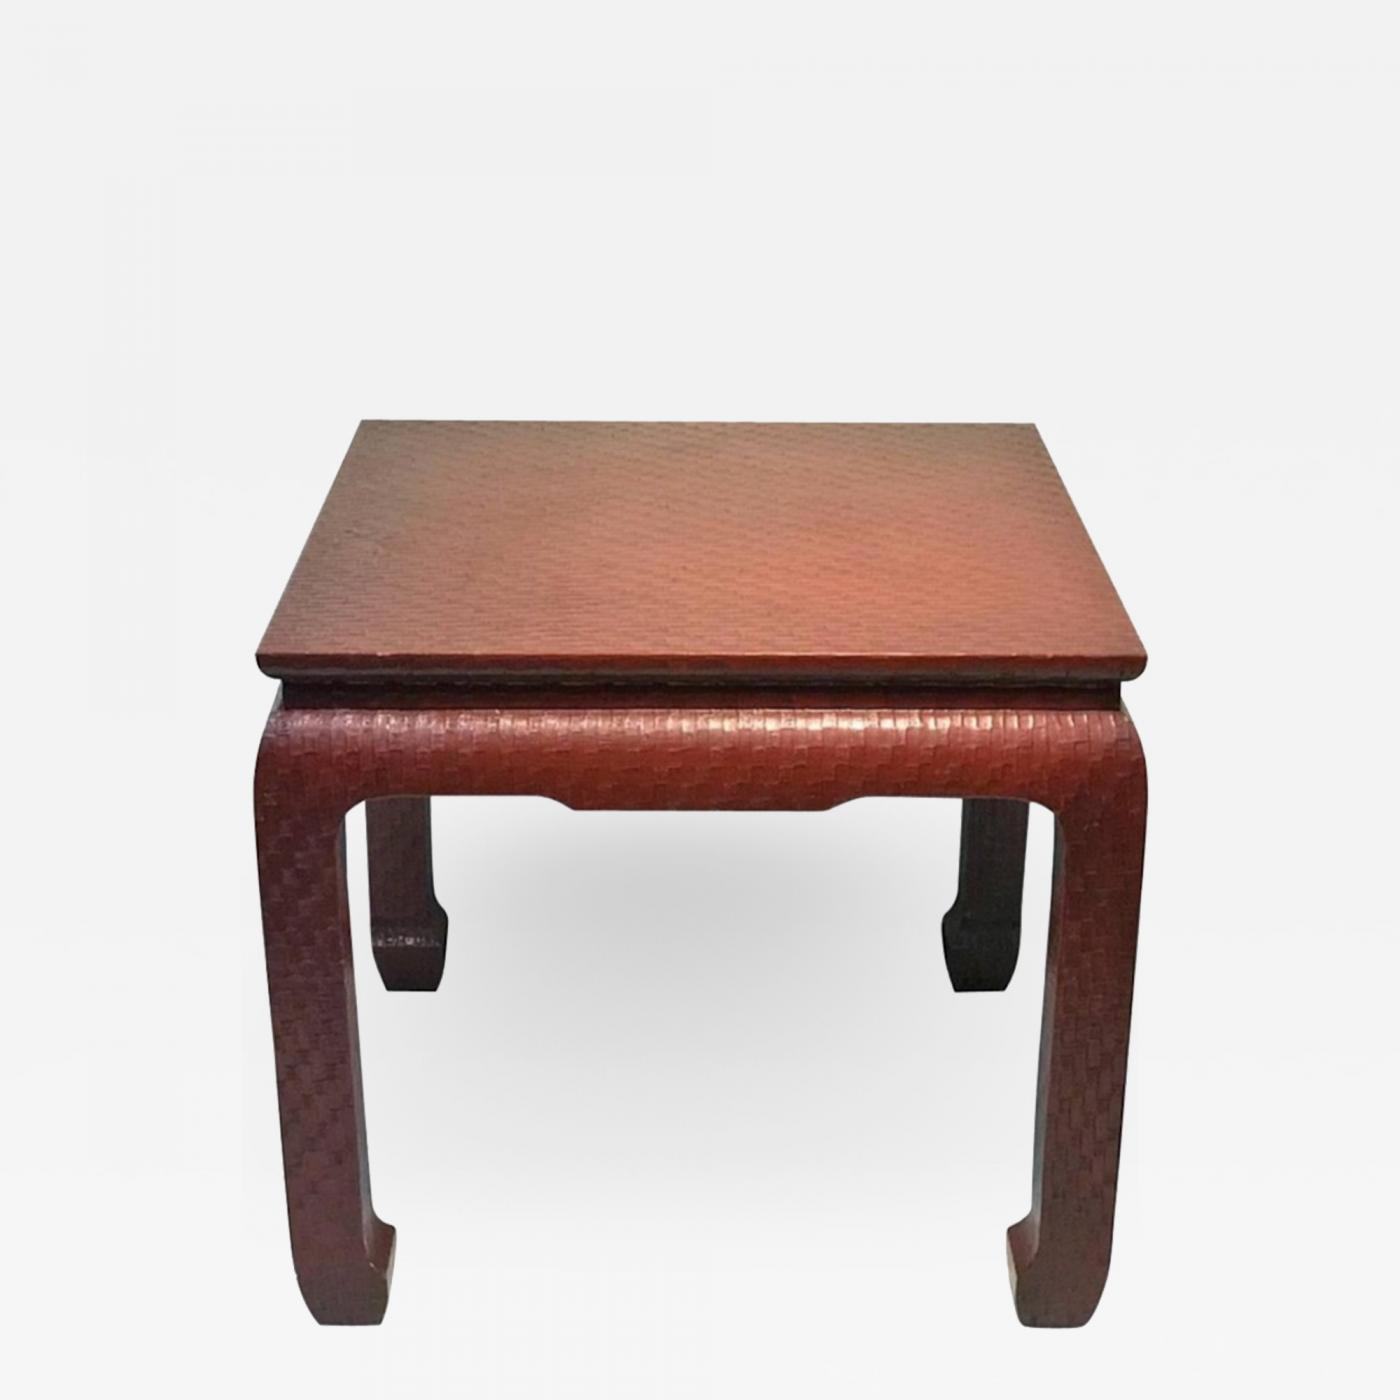 Excellent Karl Springer Modern Deep Red Wrapped Grass Cloth Coffee Table In The Manner Of Springer Bralicious Painted Fabric Chair Ideas Braliciousco